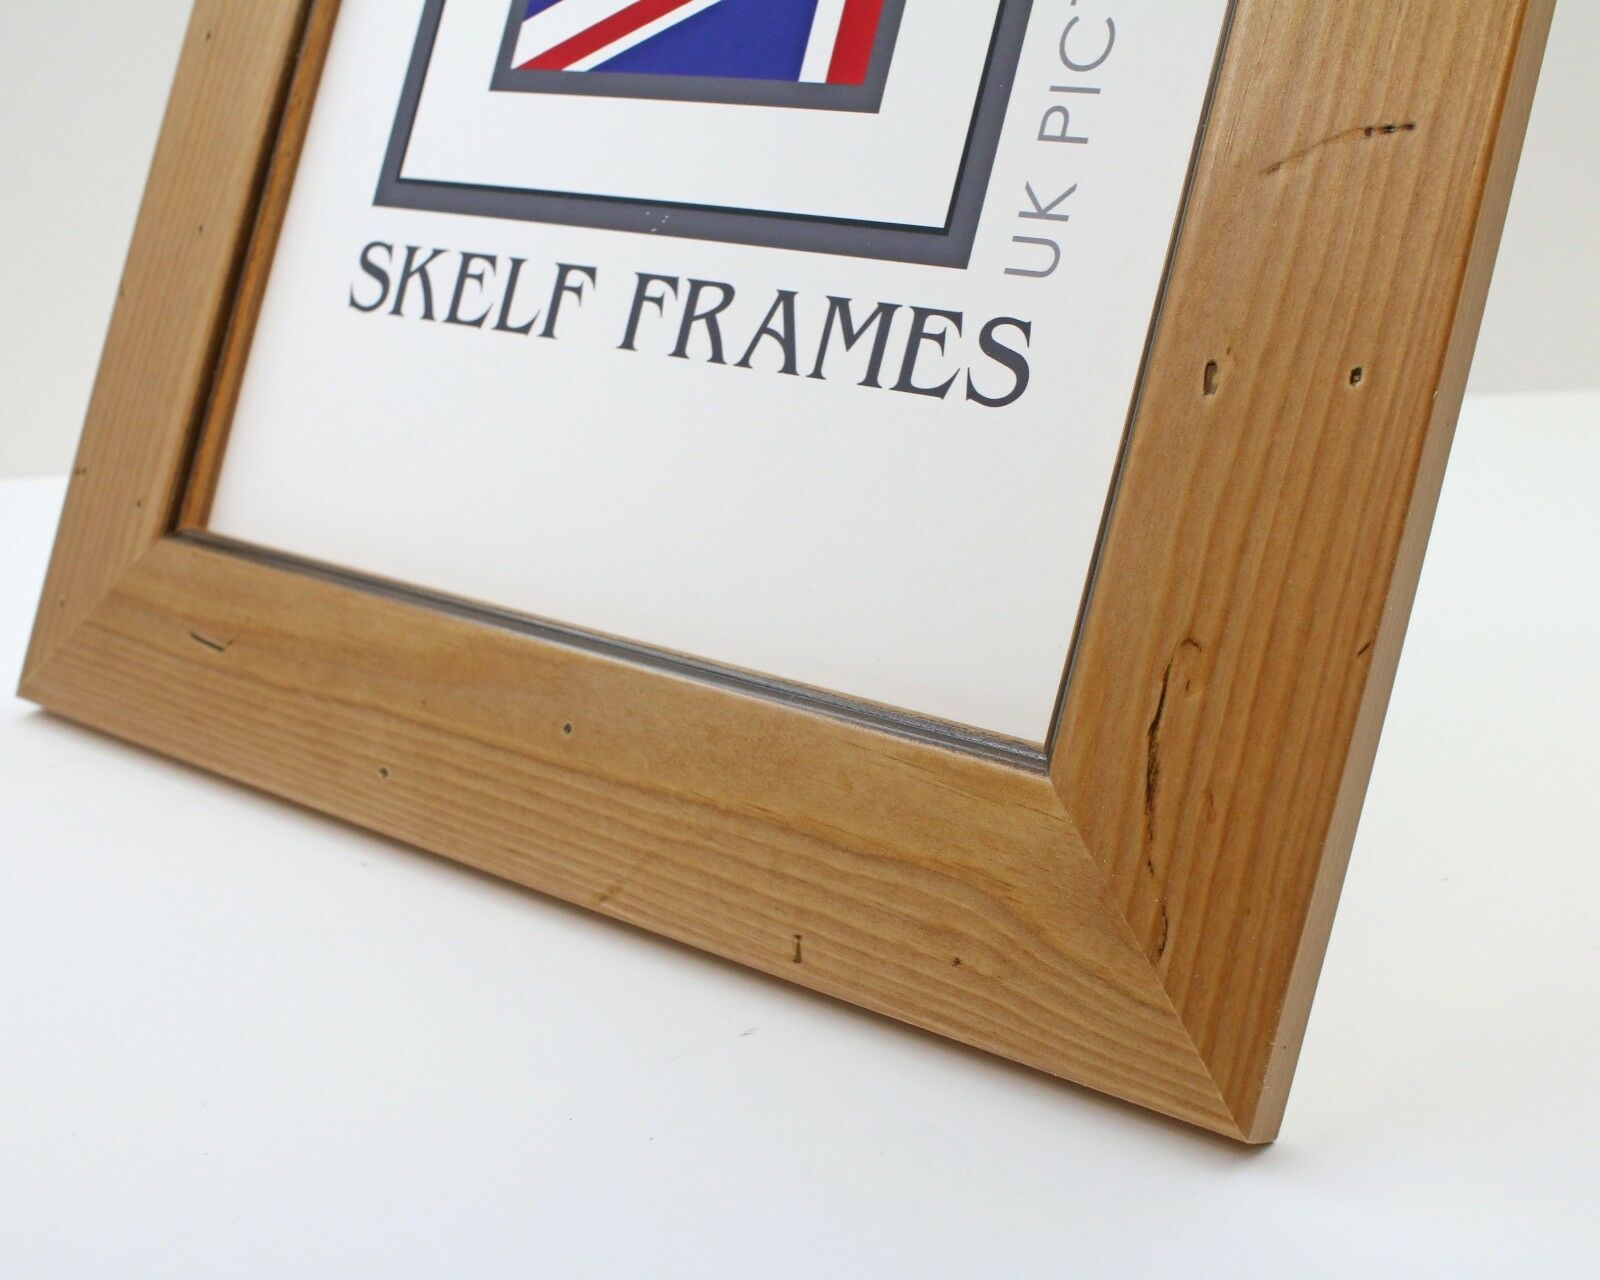 3fea3166b12 Skelf Frames Ltd 20x12 Panoramic Picture Photo Poster Wood Frame (antique  Pine for sale online